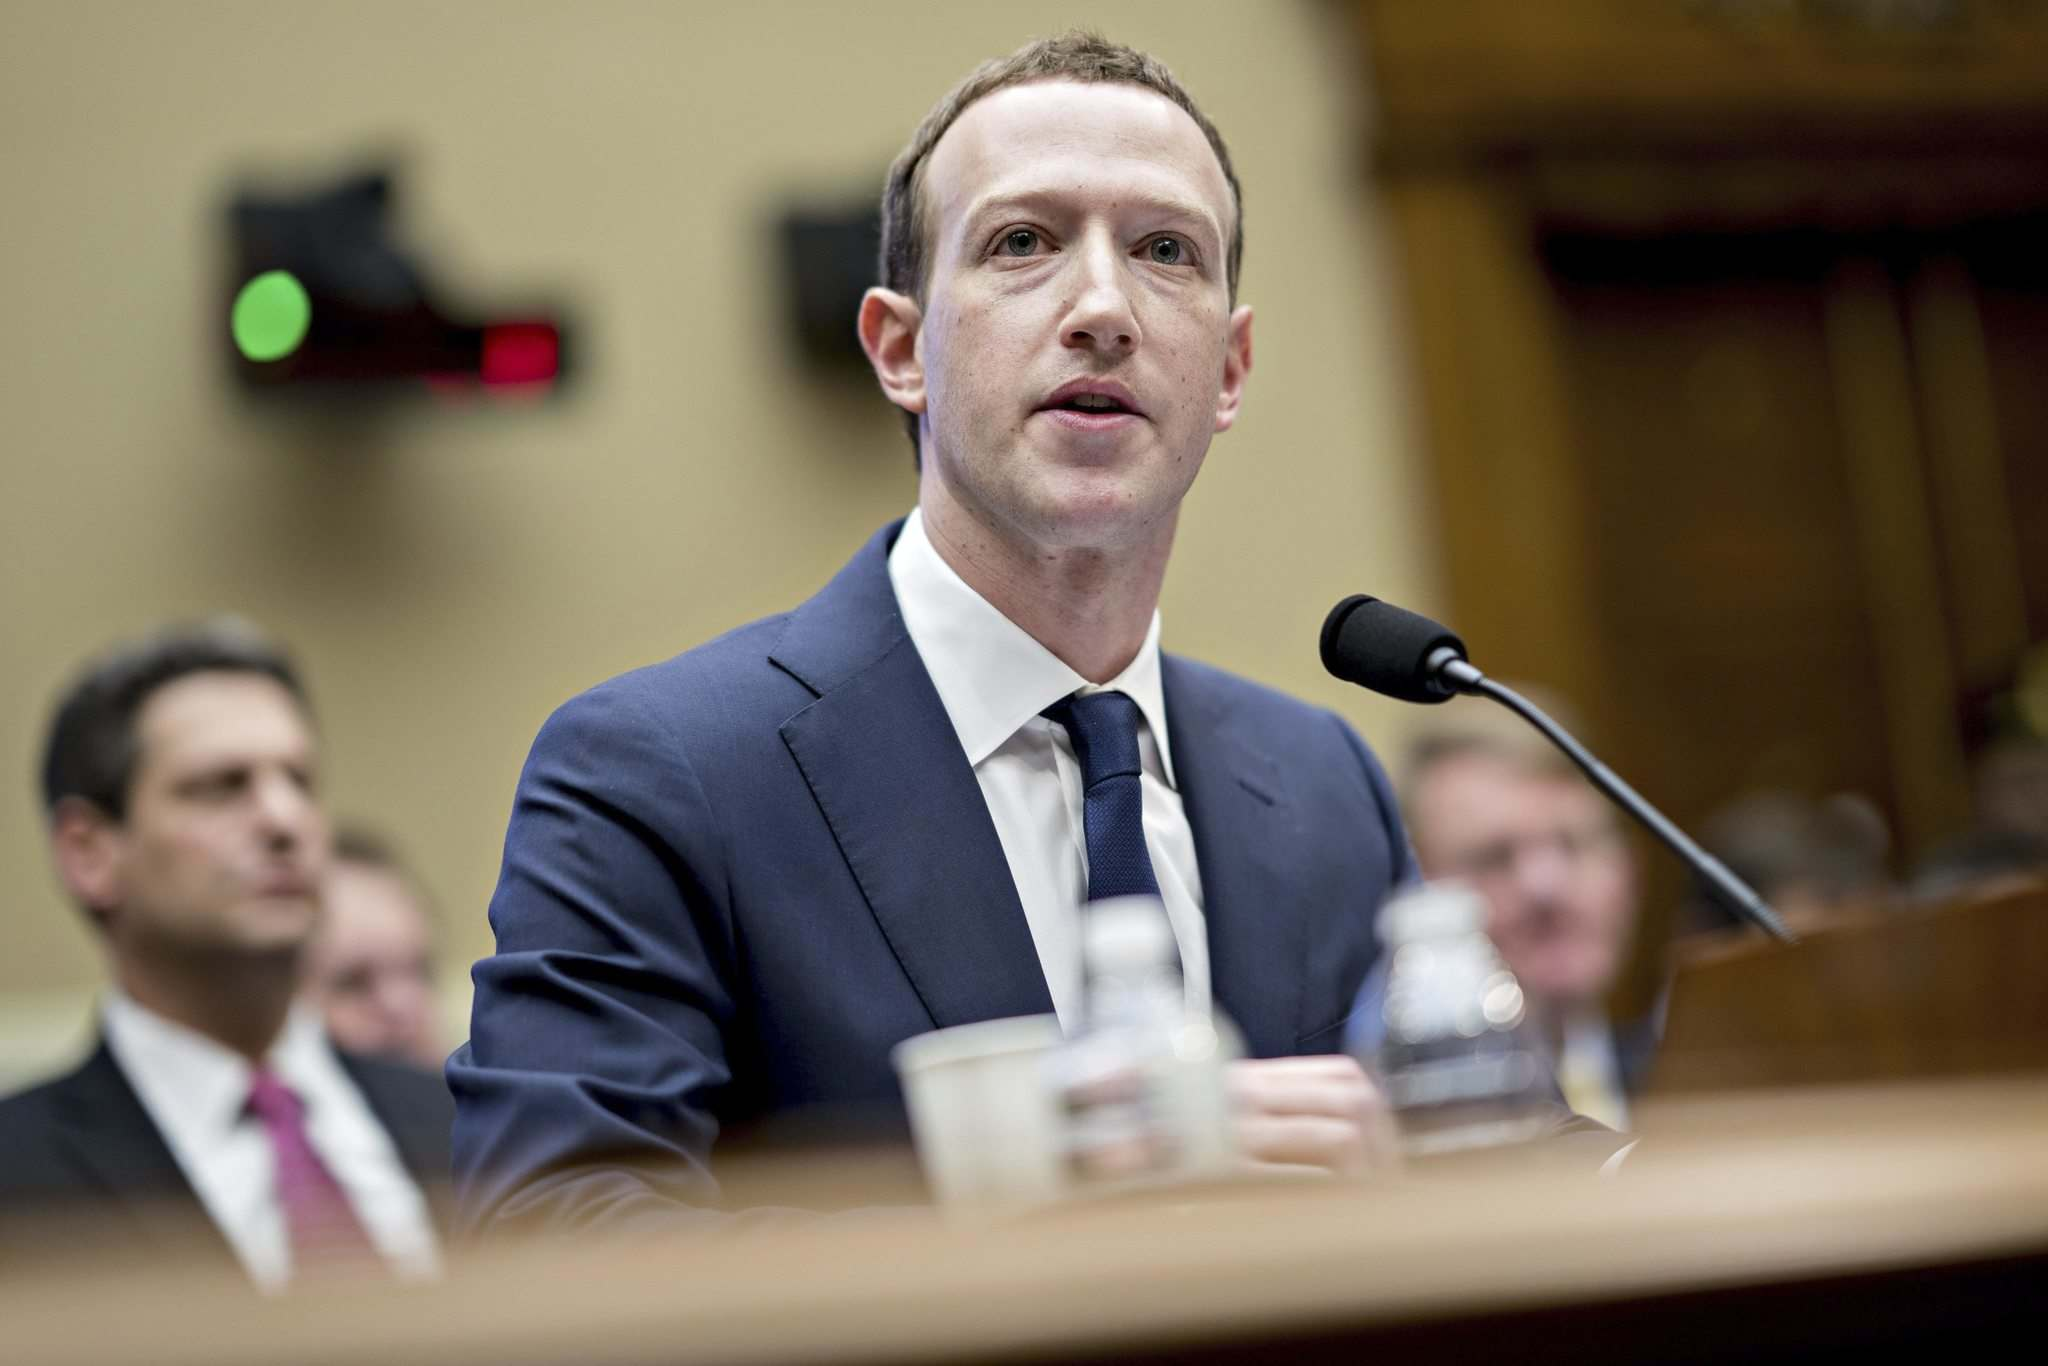 Mark Zuckerberg unscathed by congressional grilling, stock rises